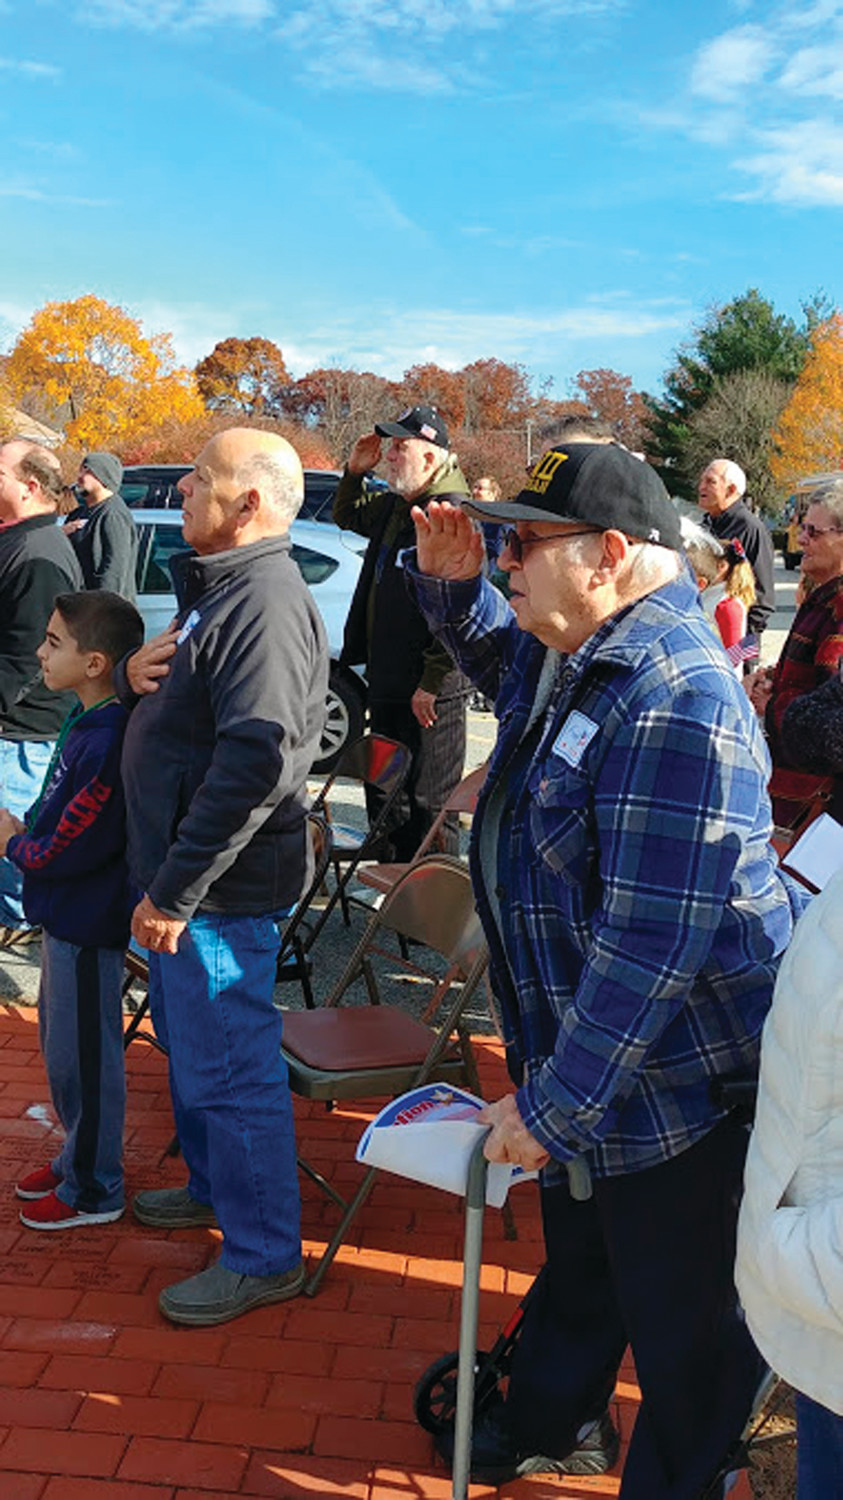 A SPECIAL SALUTE: Veterans including Frank Kay and Martin Normann could be seen saluting the flag and listening to the WHMS band play the Star Spangled Banner.